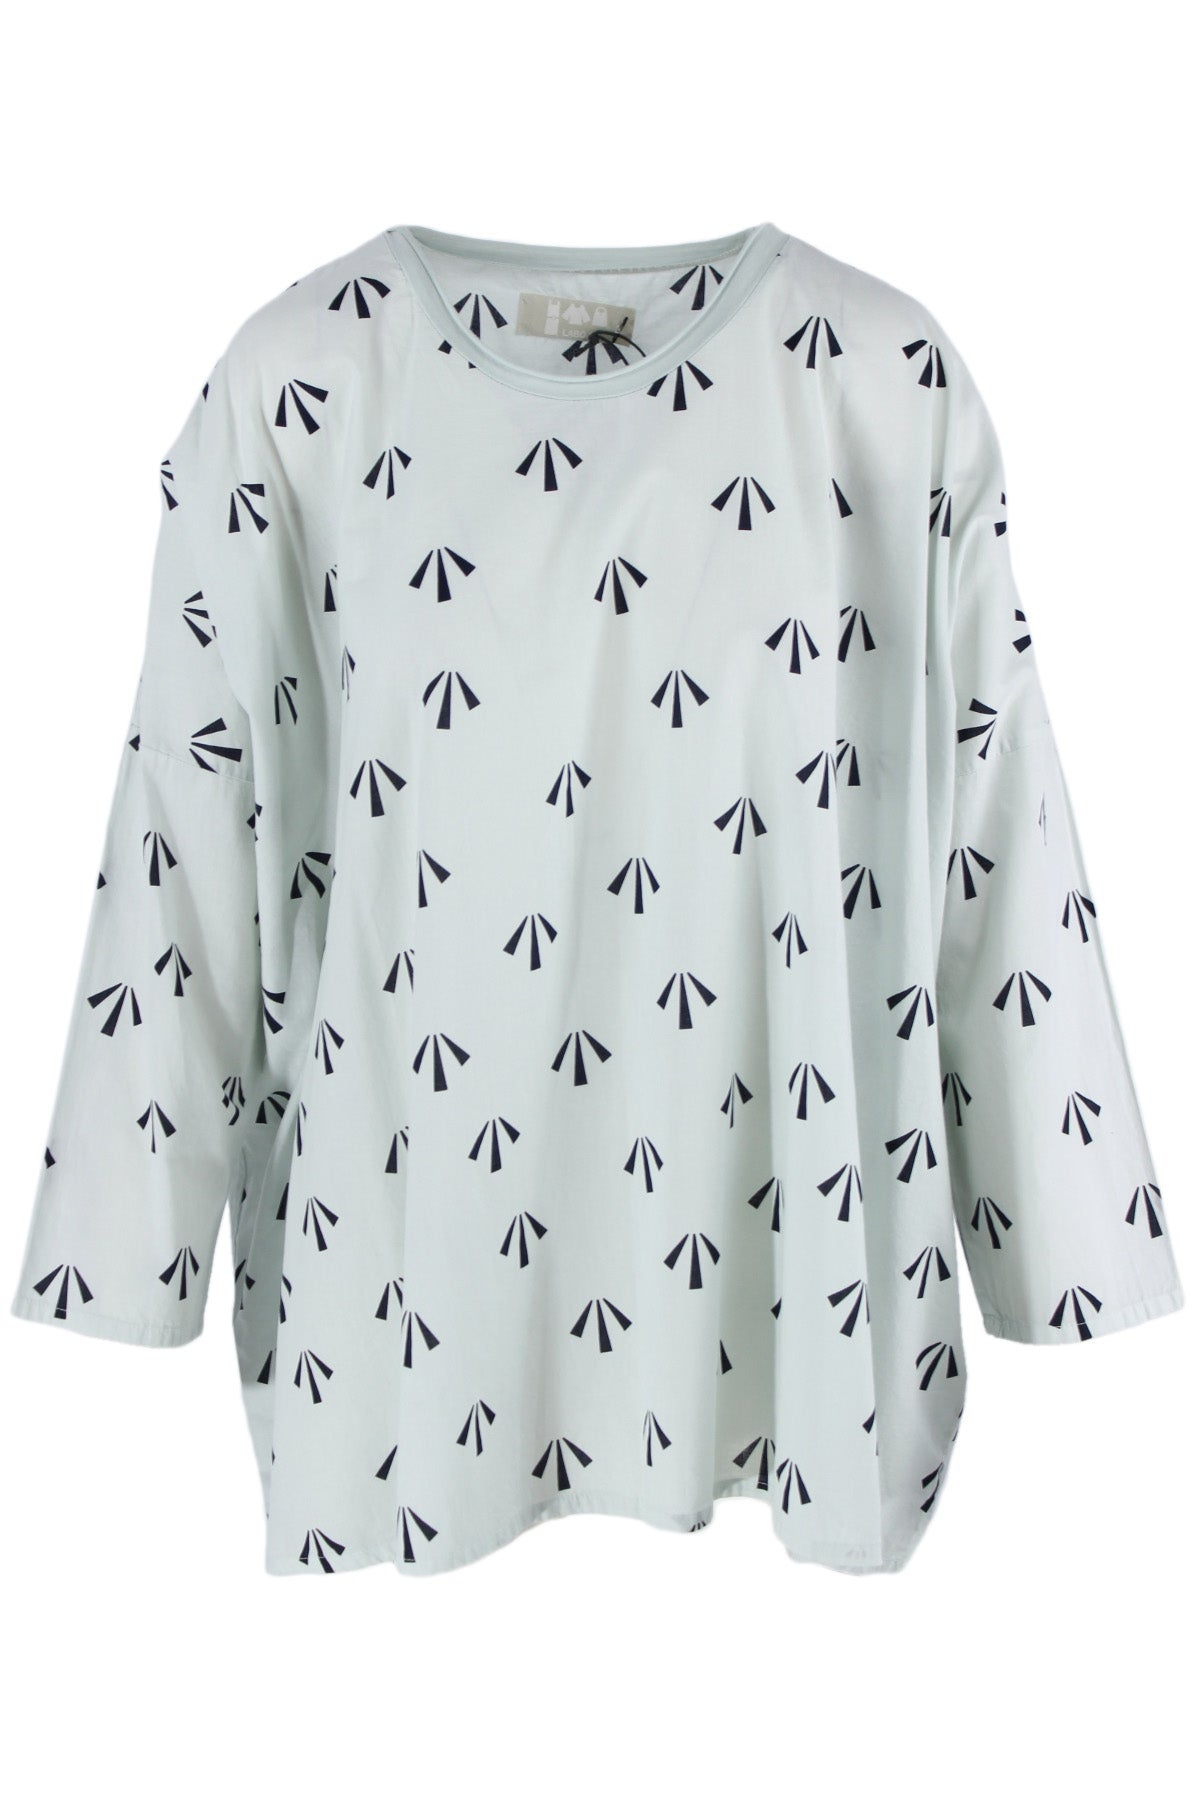 labo.art light blue printed long sleeve top. features light blue exterior with black geometric print throughout, round neckline and long sleeves.